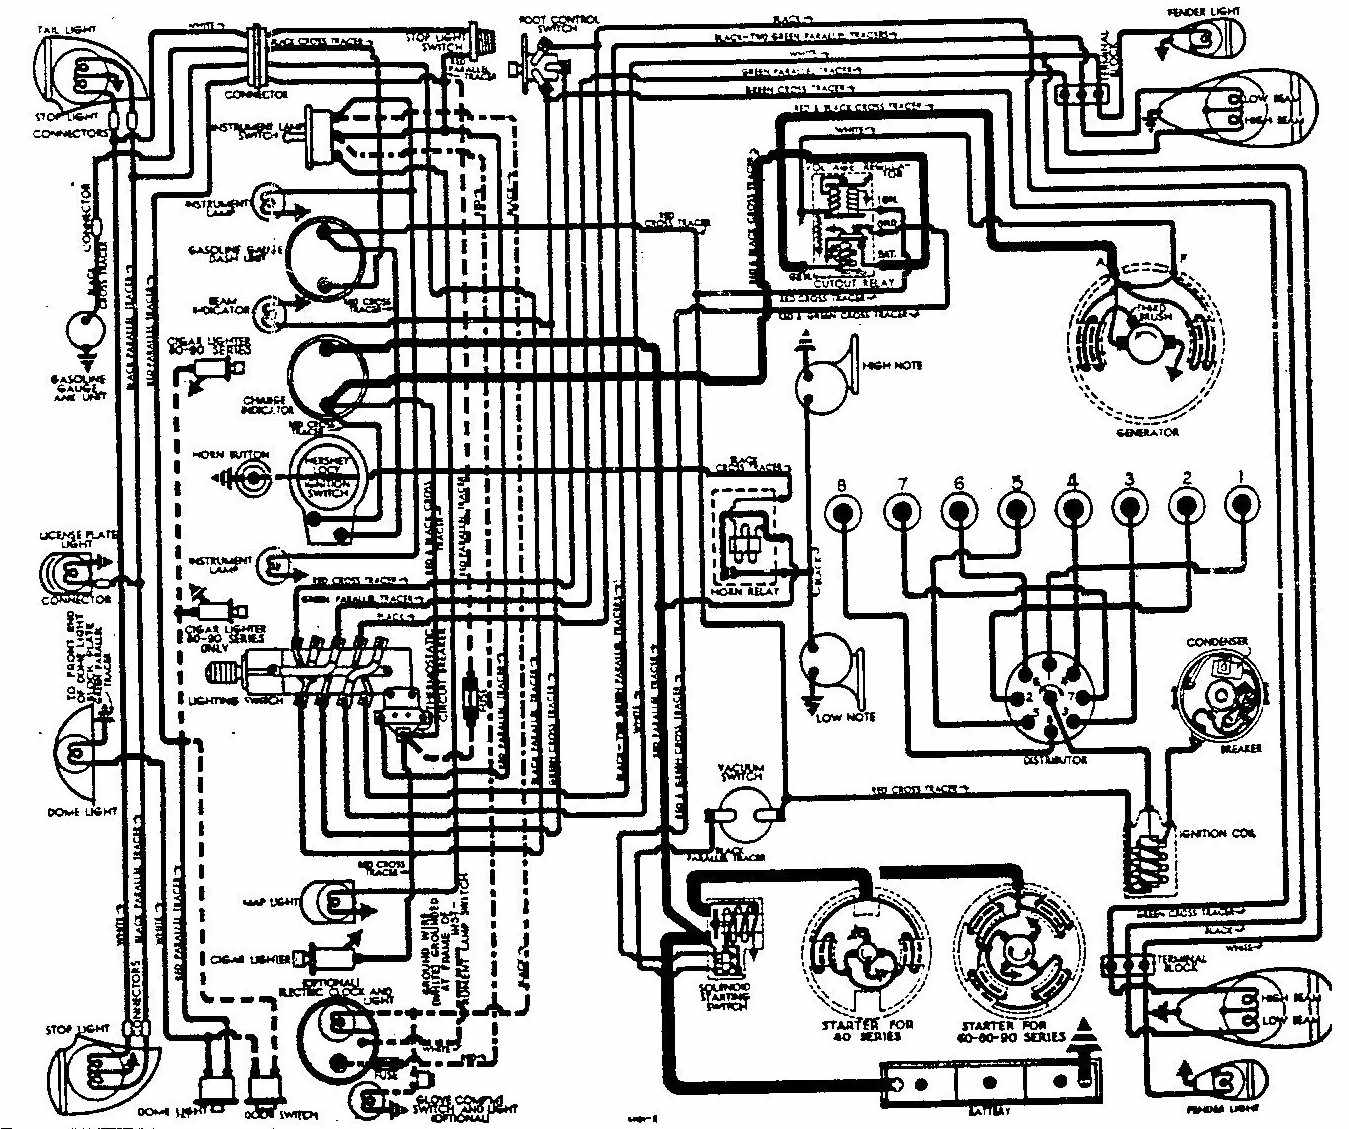 Buick+Roadmaster+1938+Electrical+Wiring+Diagram ford 7710 tractor wiring diagram ford discover your wiring Ford Tractor Wiring Harness Diagram at mr168.co